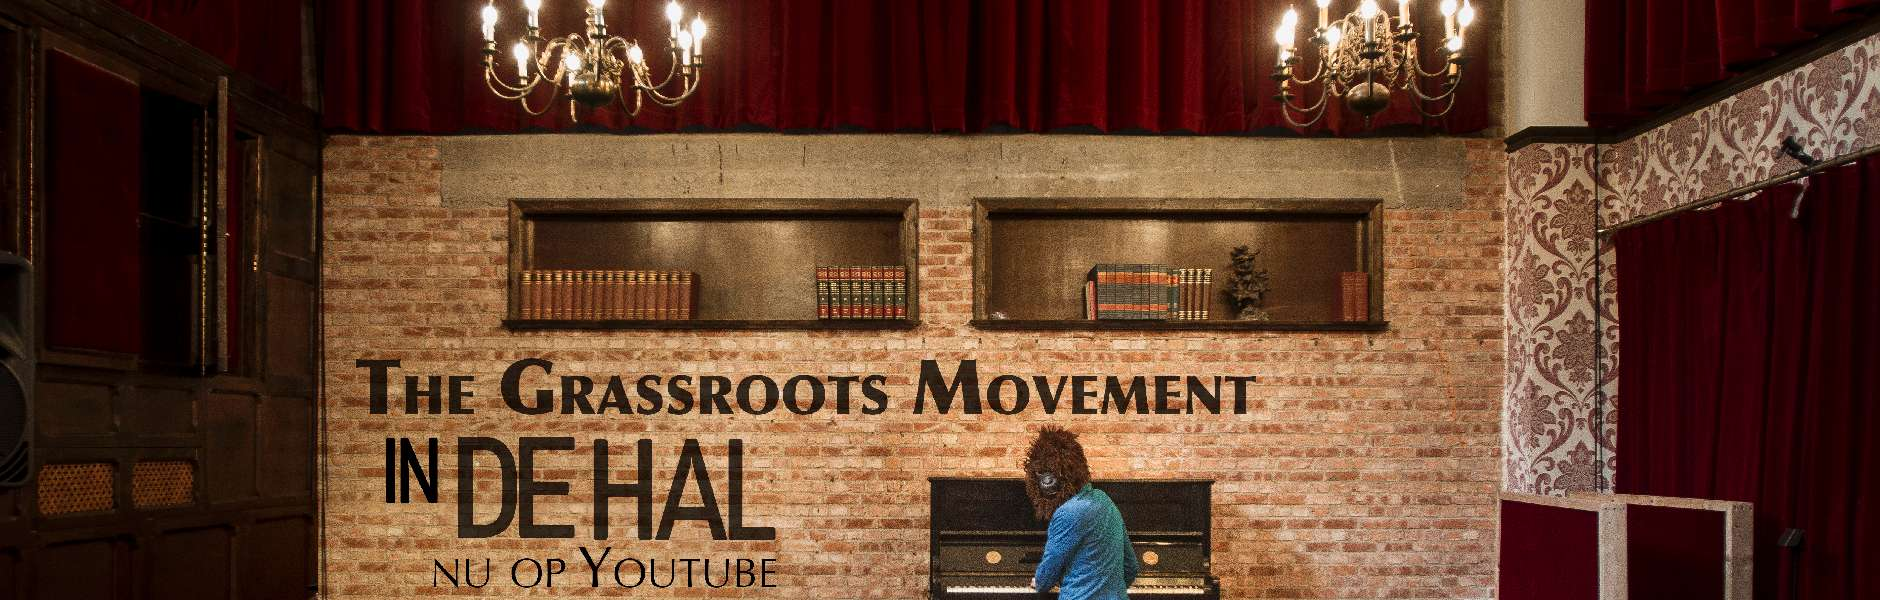 The Grassroots Movement